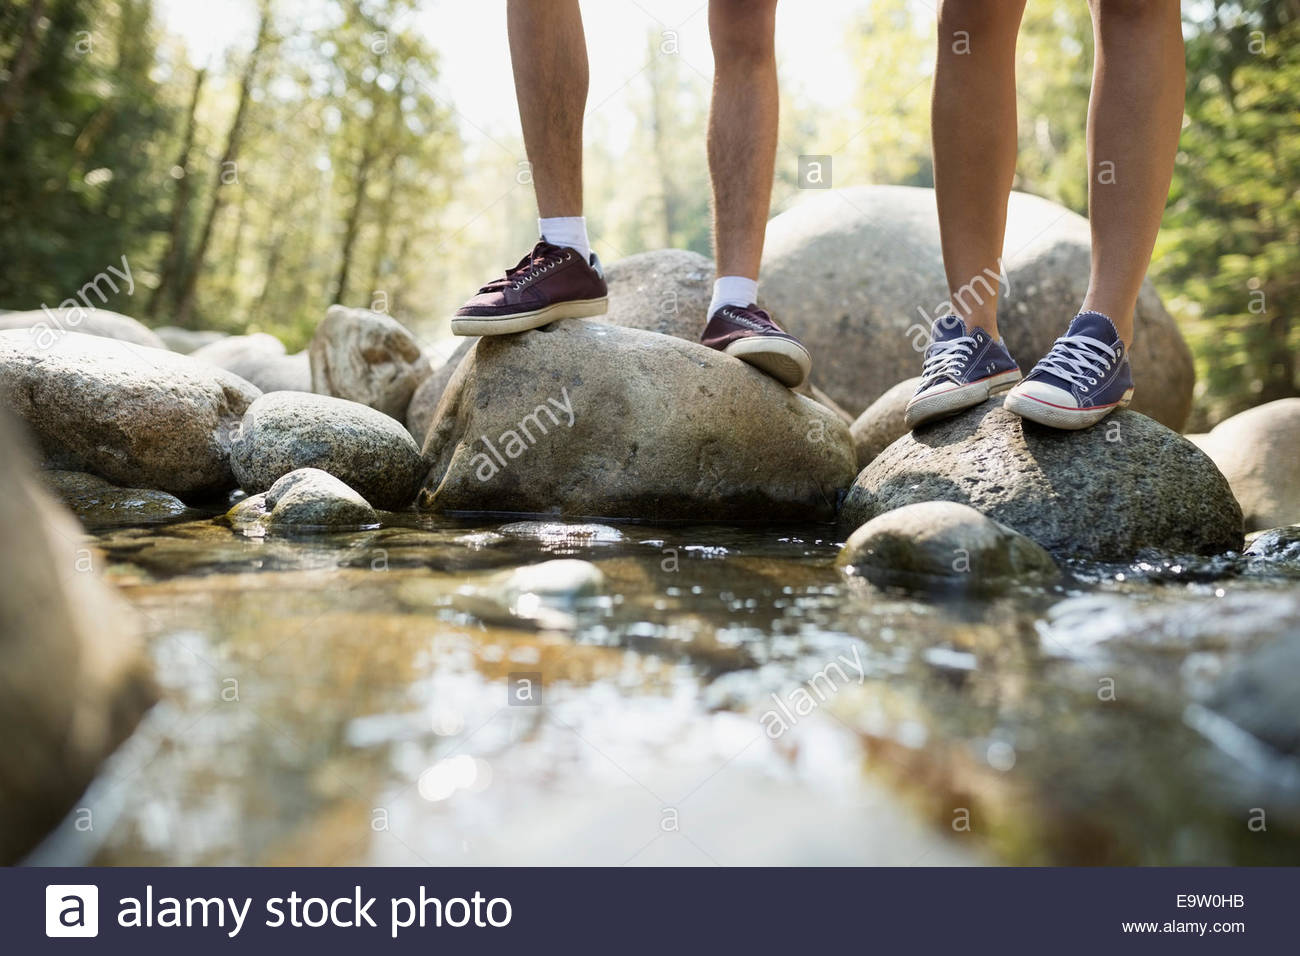 Friends standing on rocks in creek - Stock Image